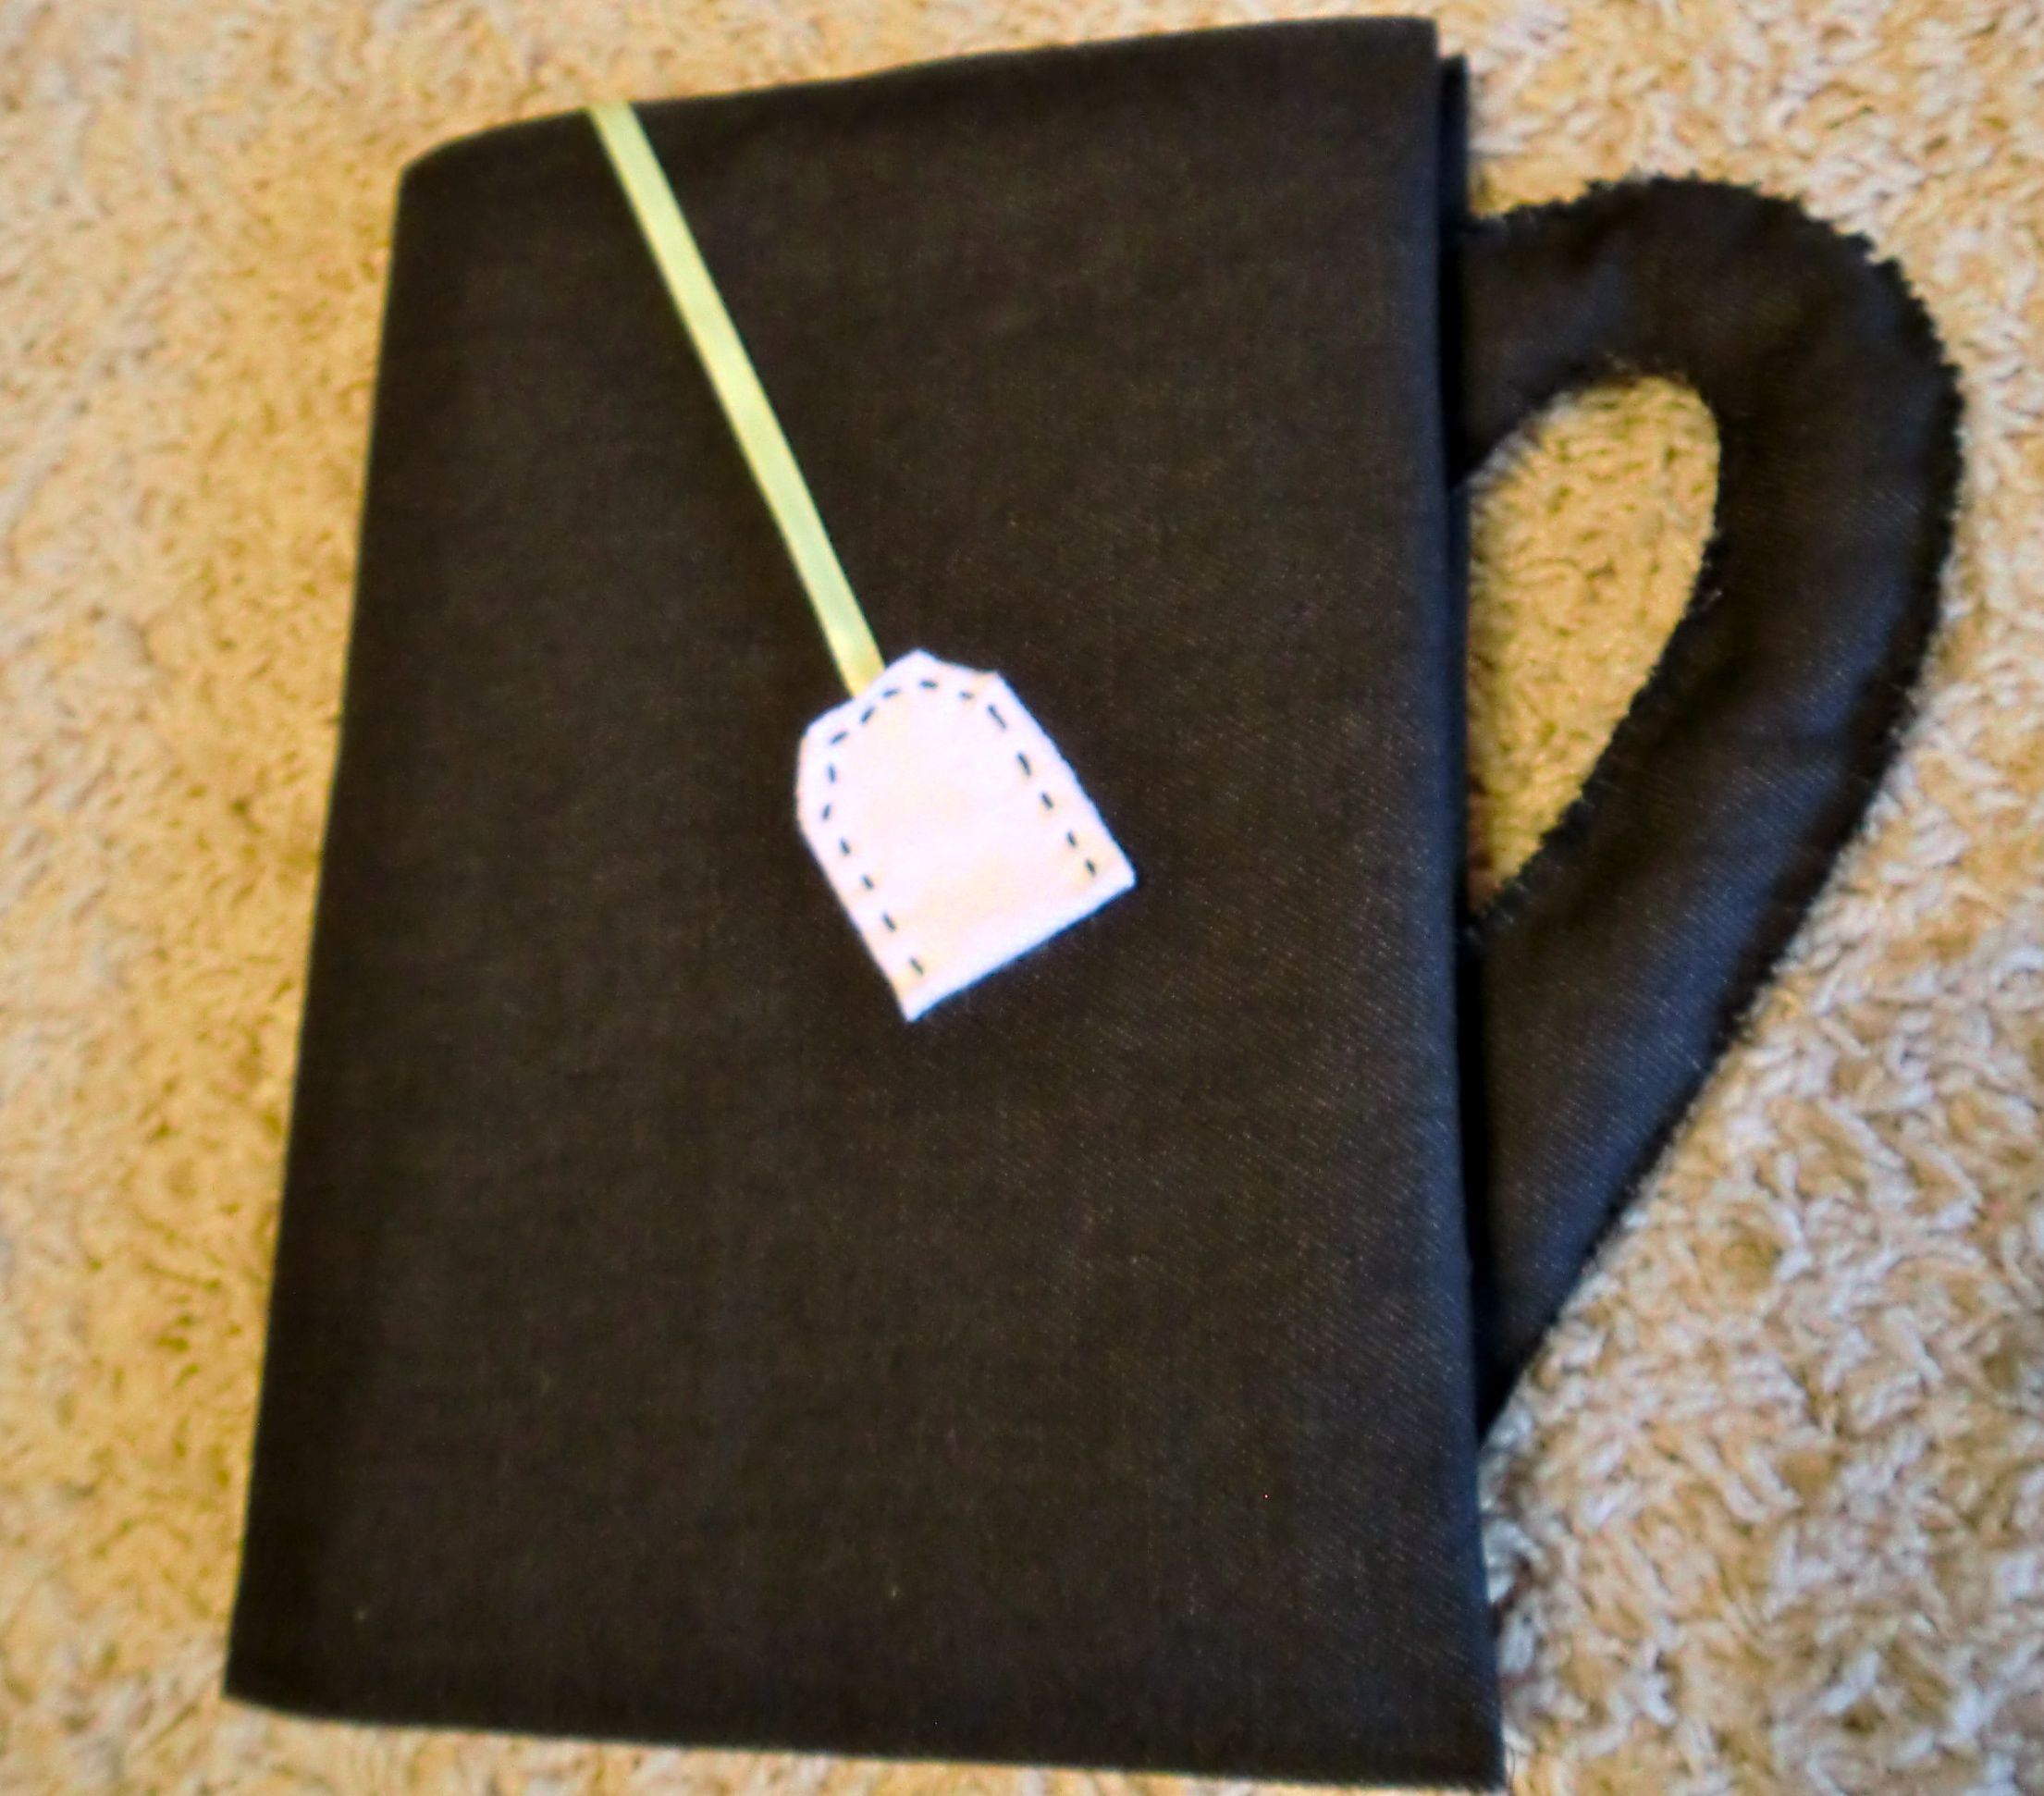 homemade tea cup book cover  http://thinkimight.wordpress.com/2011/12/13/coverabook/